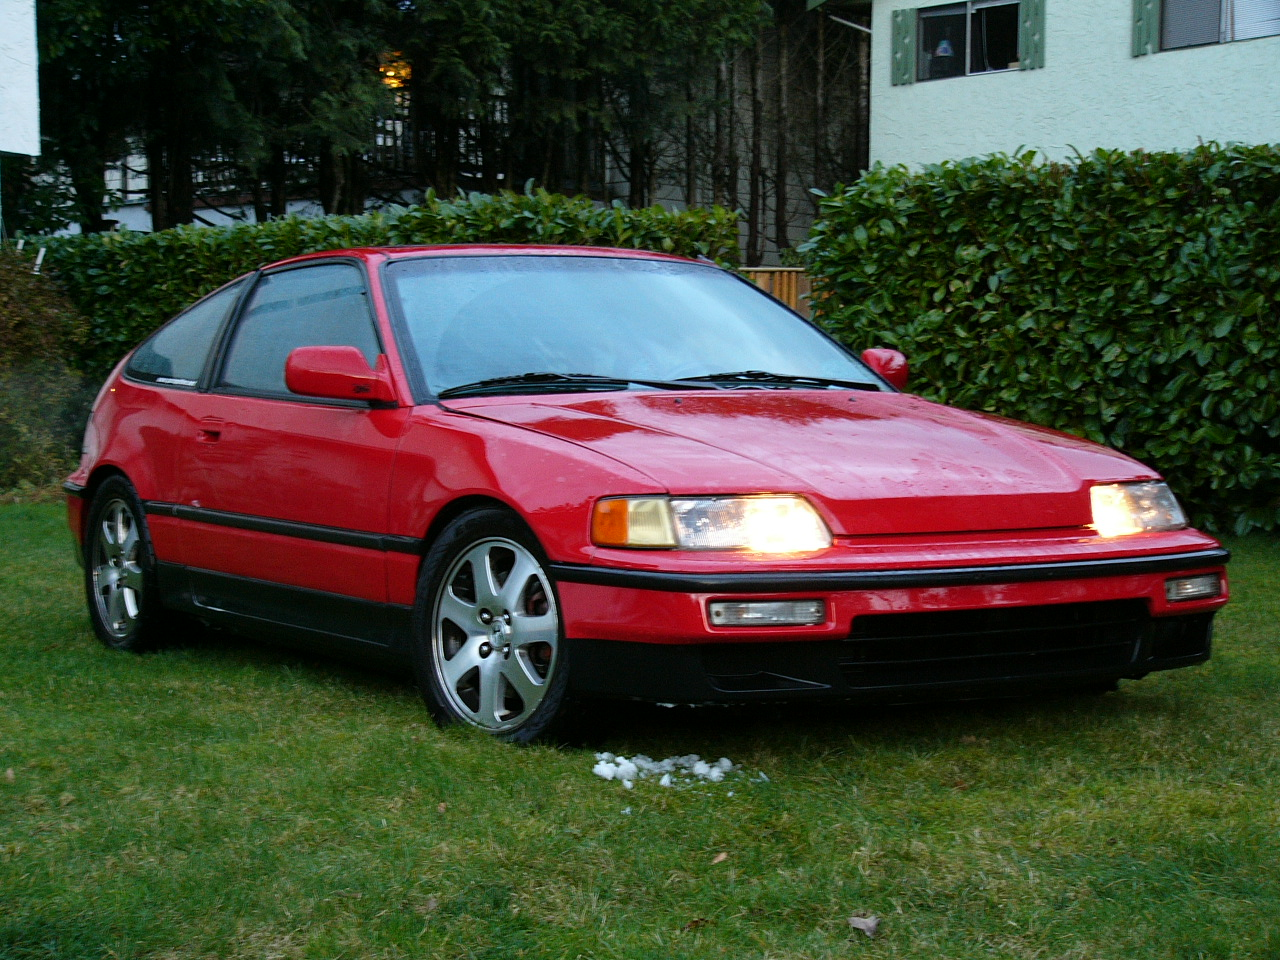 1991 Honda Civic CRX #1 Honda Civic CRX #1